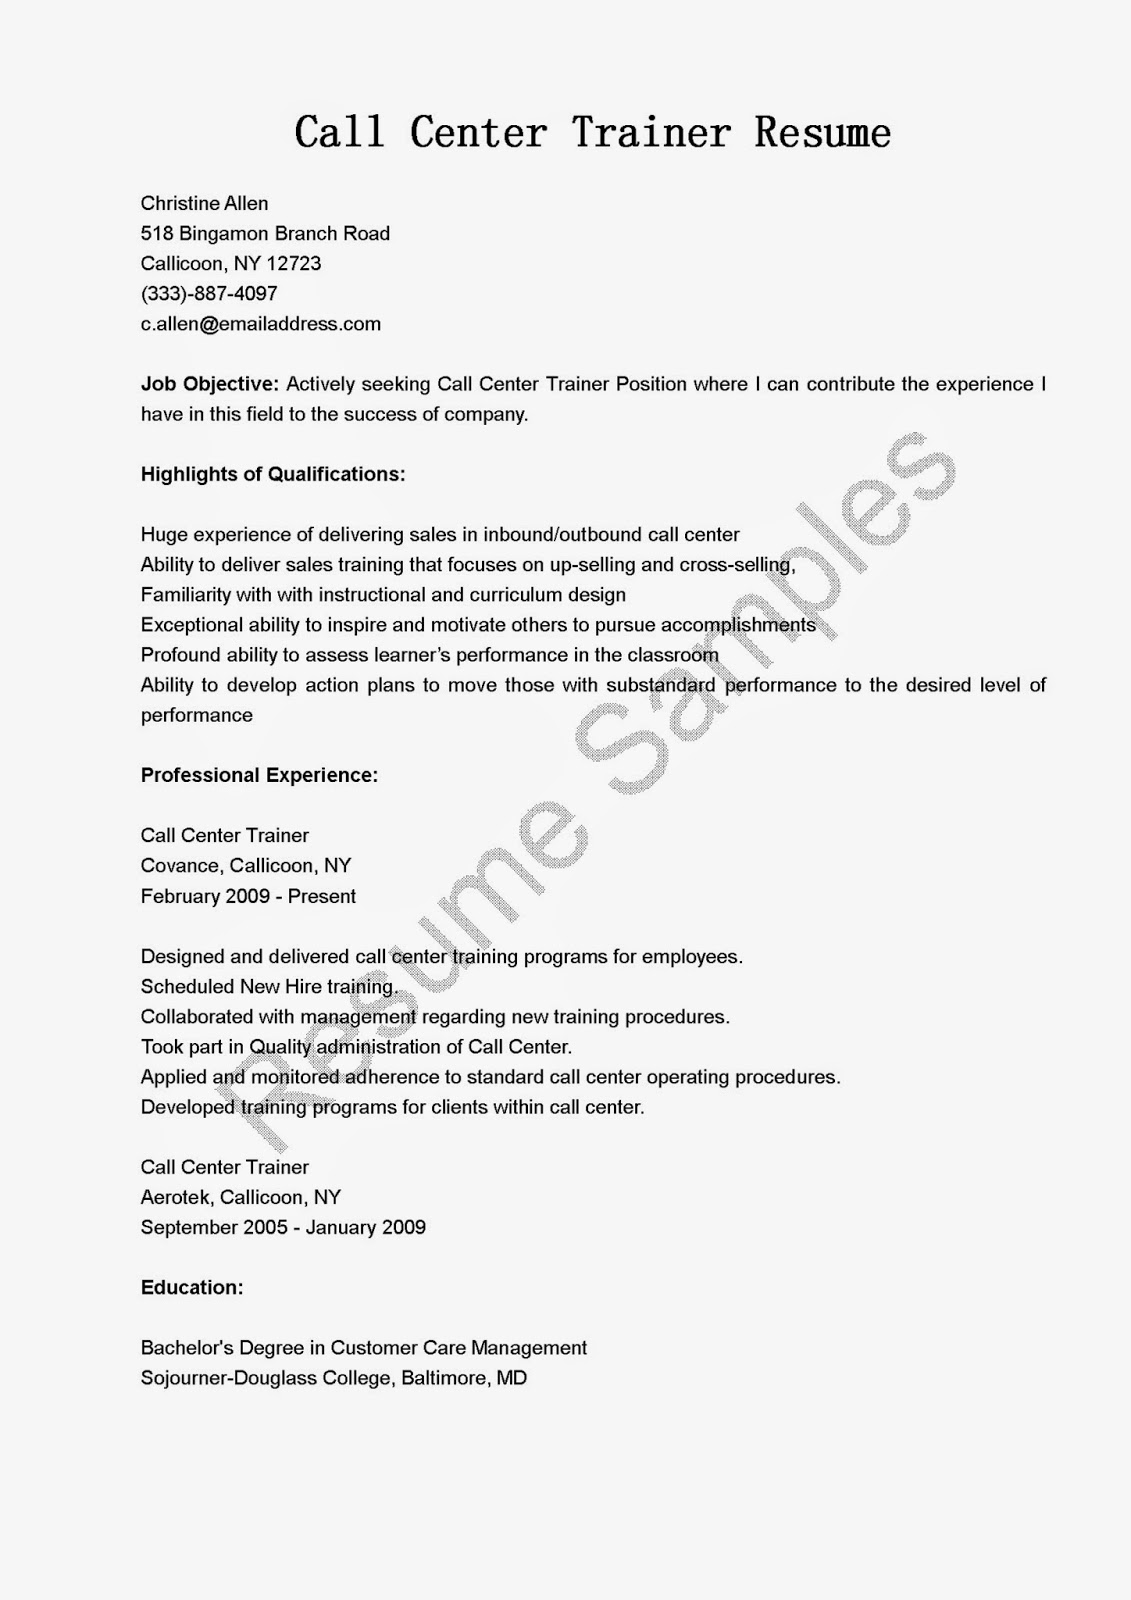 Team Leader Resume Sample Bpo Team Manager Resume Team Leader Resume Team  Leader Resume Sample Bpo